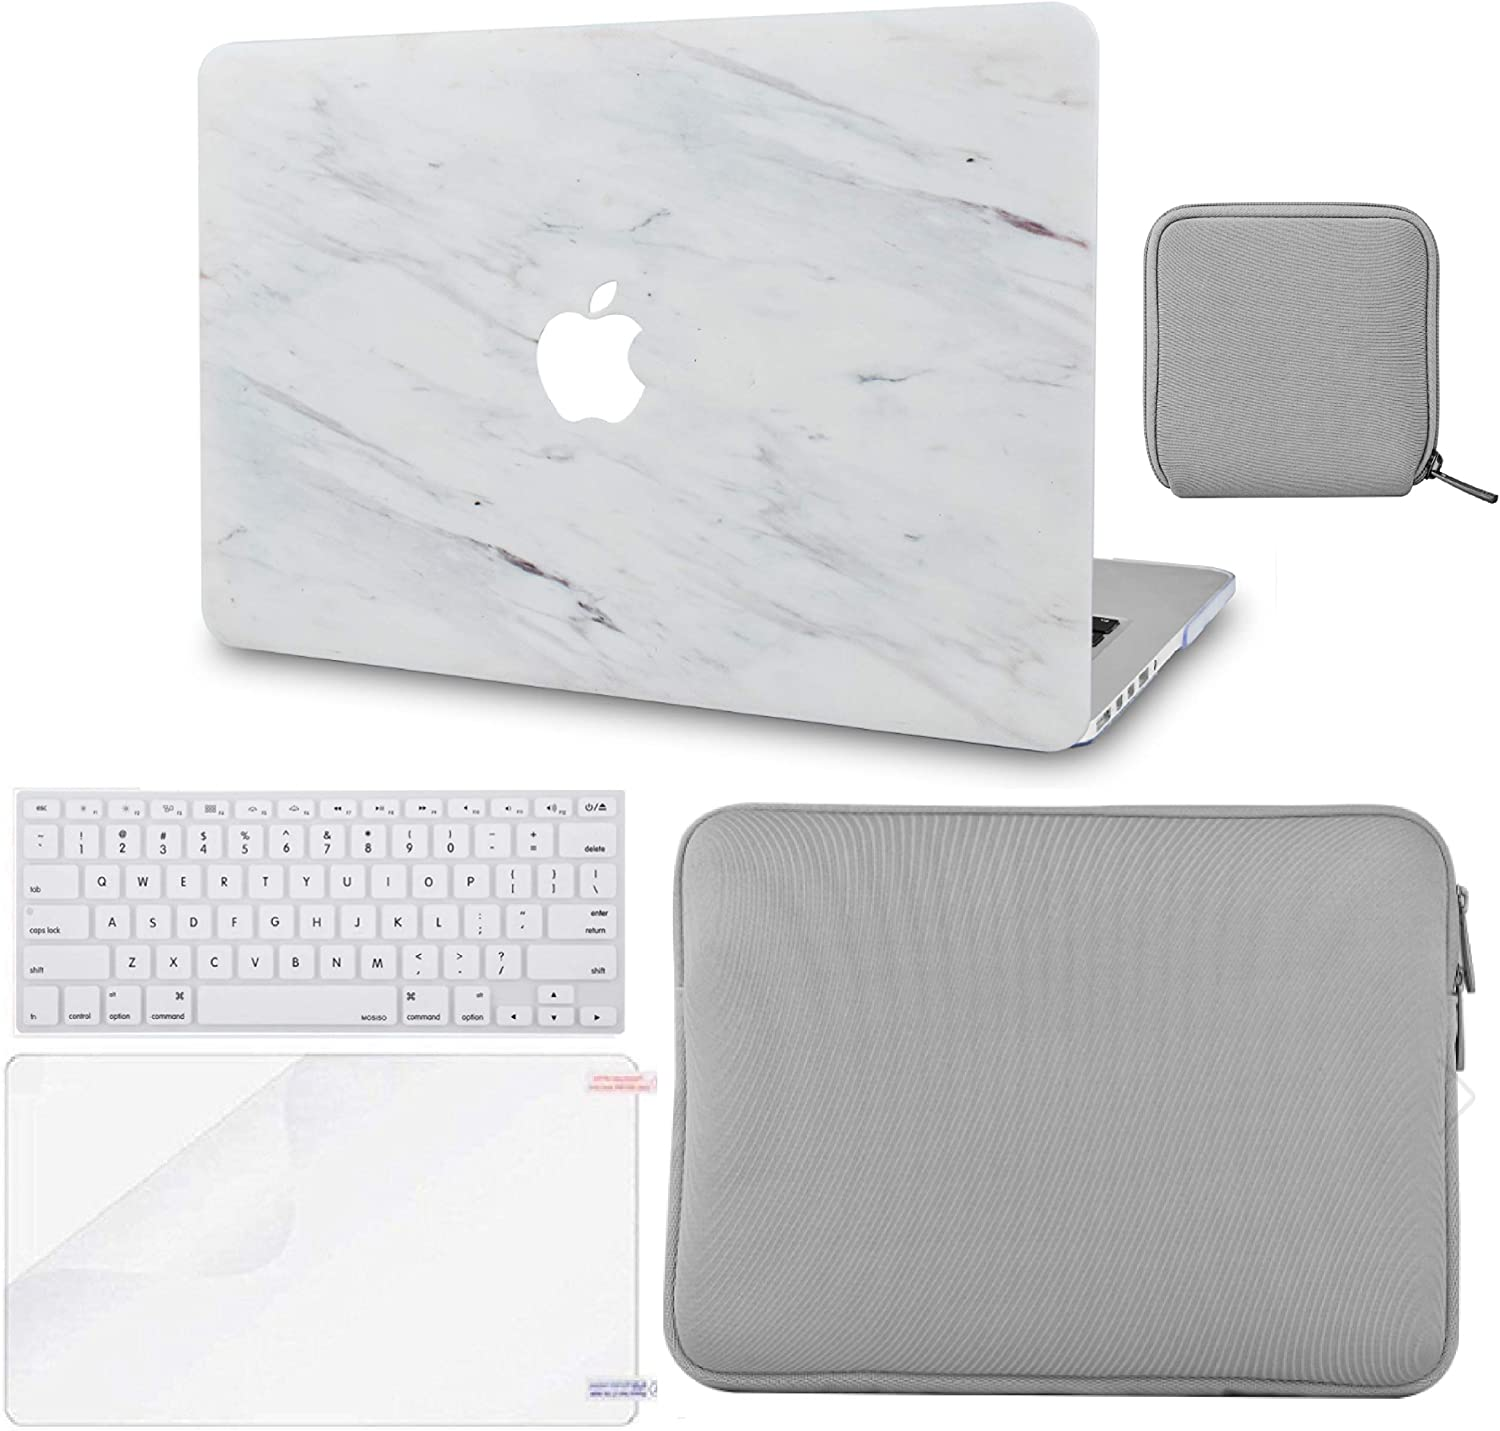 LuvCase 5 in 1 LaptopCase for MacBook Air 13 Inch (Touch ID)(2018-2020) A1932 Retina Display HardShell Cover, Slim Sleeve, Pouch, Keyboard Cover & Screen Protector (Silk White Marble)